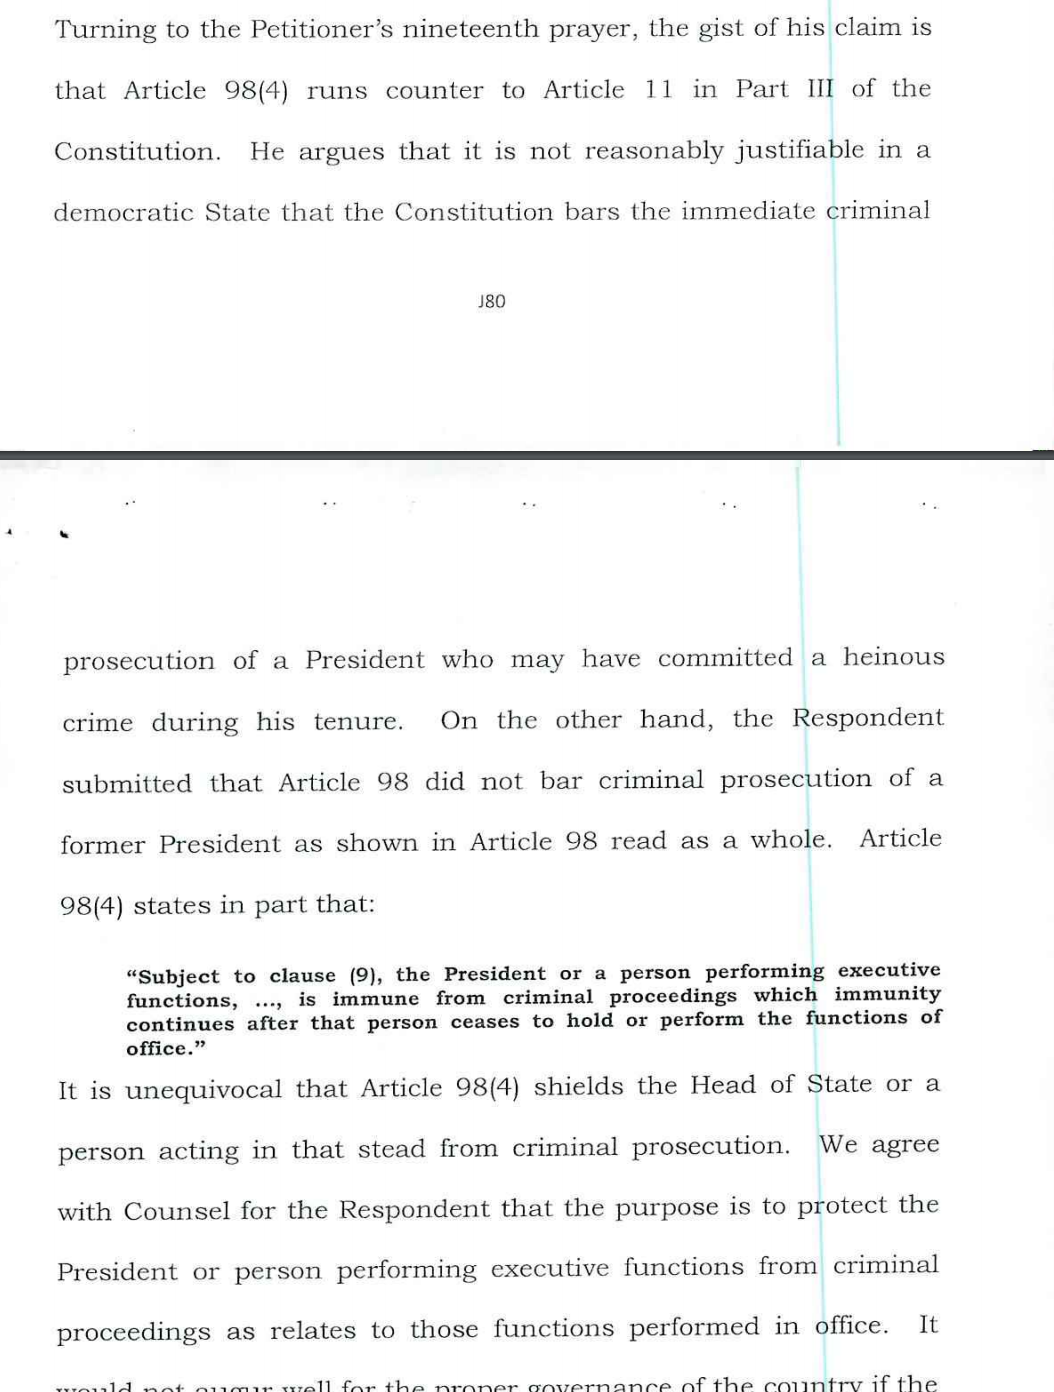 Presidential immunity not absolute, clarifies Constitutional Court